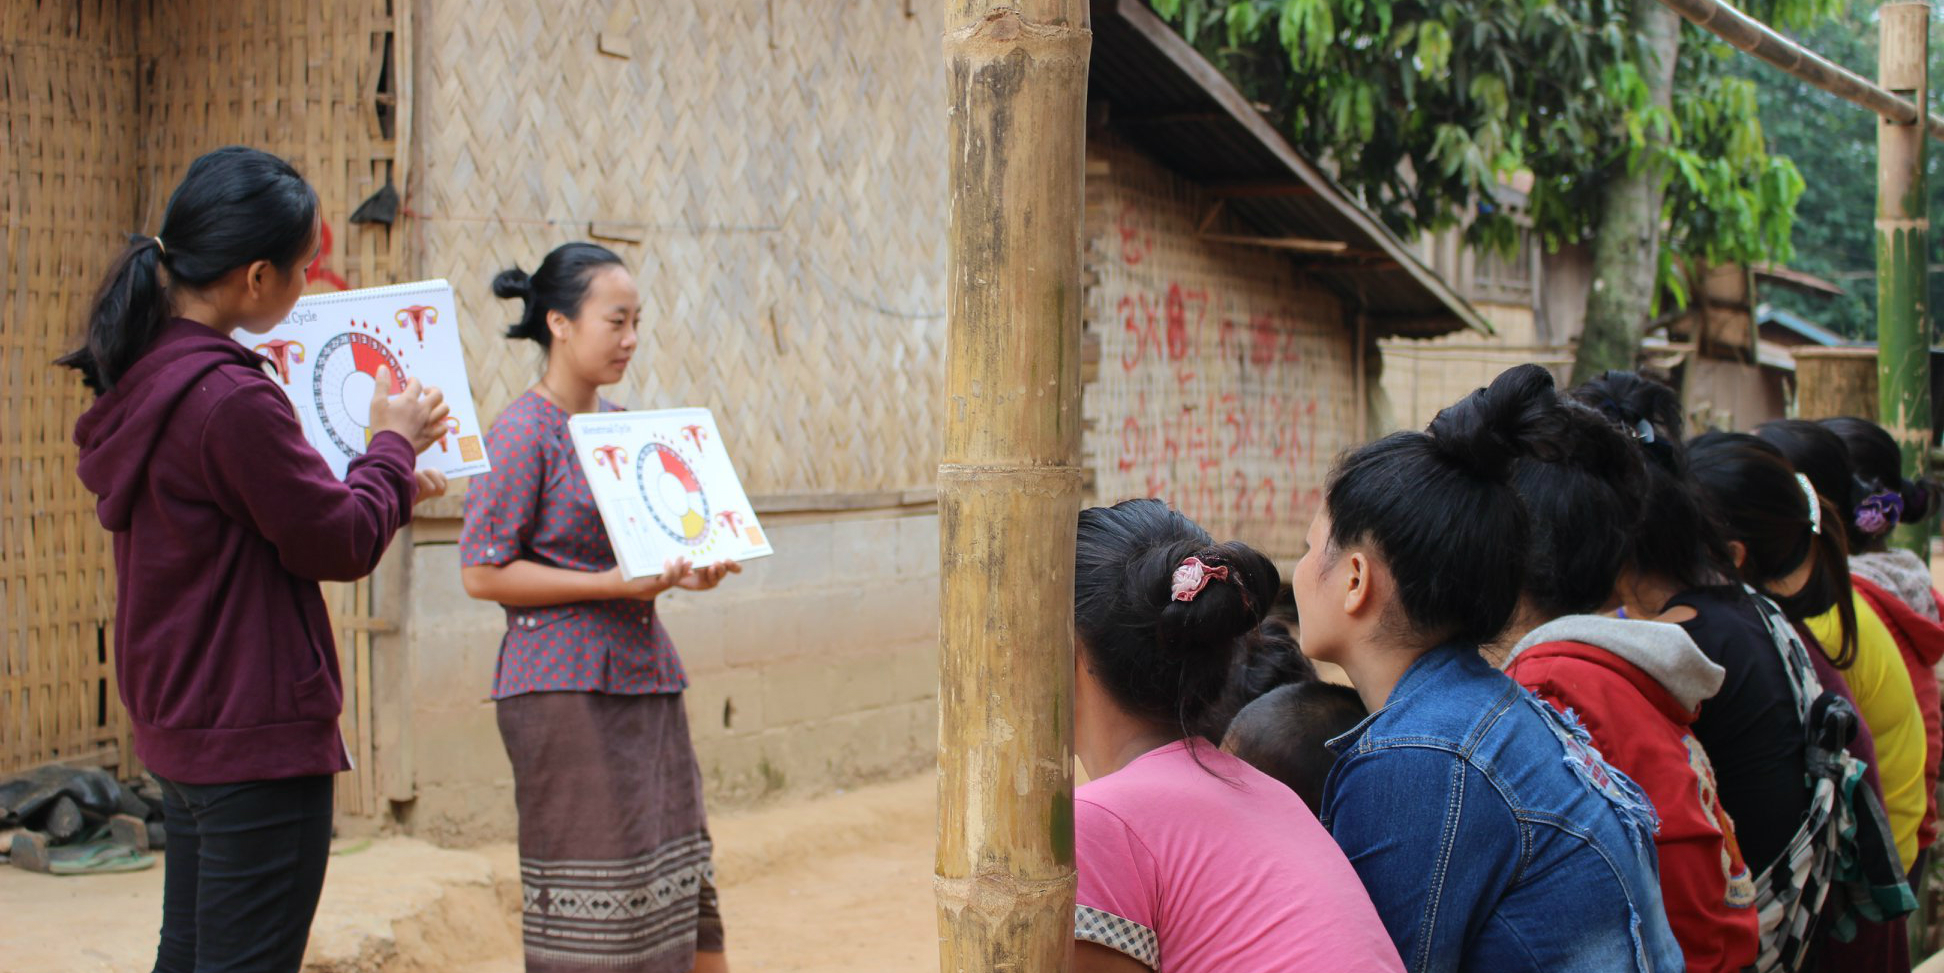 Local women lead a session on menstrual health education in Laos | donate or volunteer